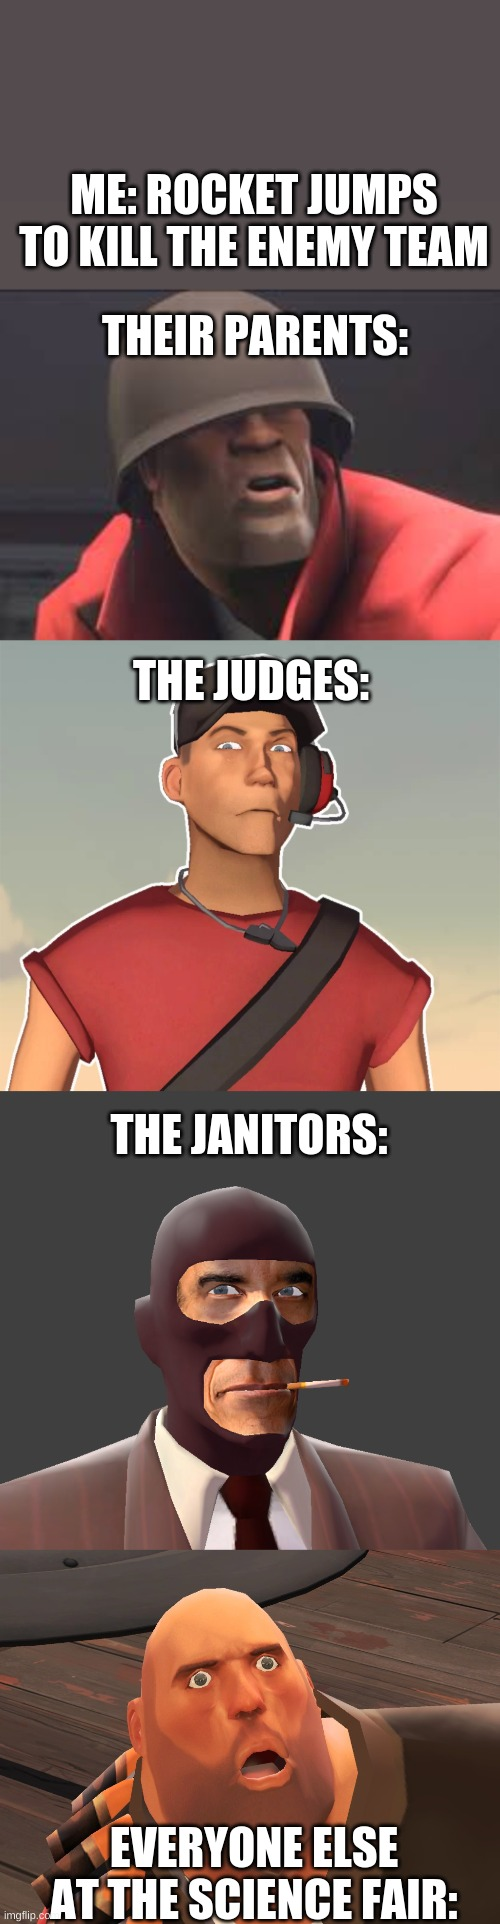 Billy no! |  ME: ROCKET JUMPS TO KILL THE ENEMY TEAM; THEIR PARENTS:; THE JUDGES:; THE JANITORS:; EVERYONE ELSE AT THE SCIENCE FAIR: | image tagged in tf2,disturbed | made w/ Imgflip meme maker